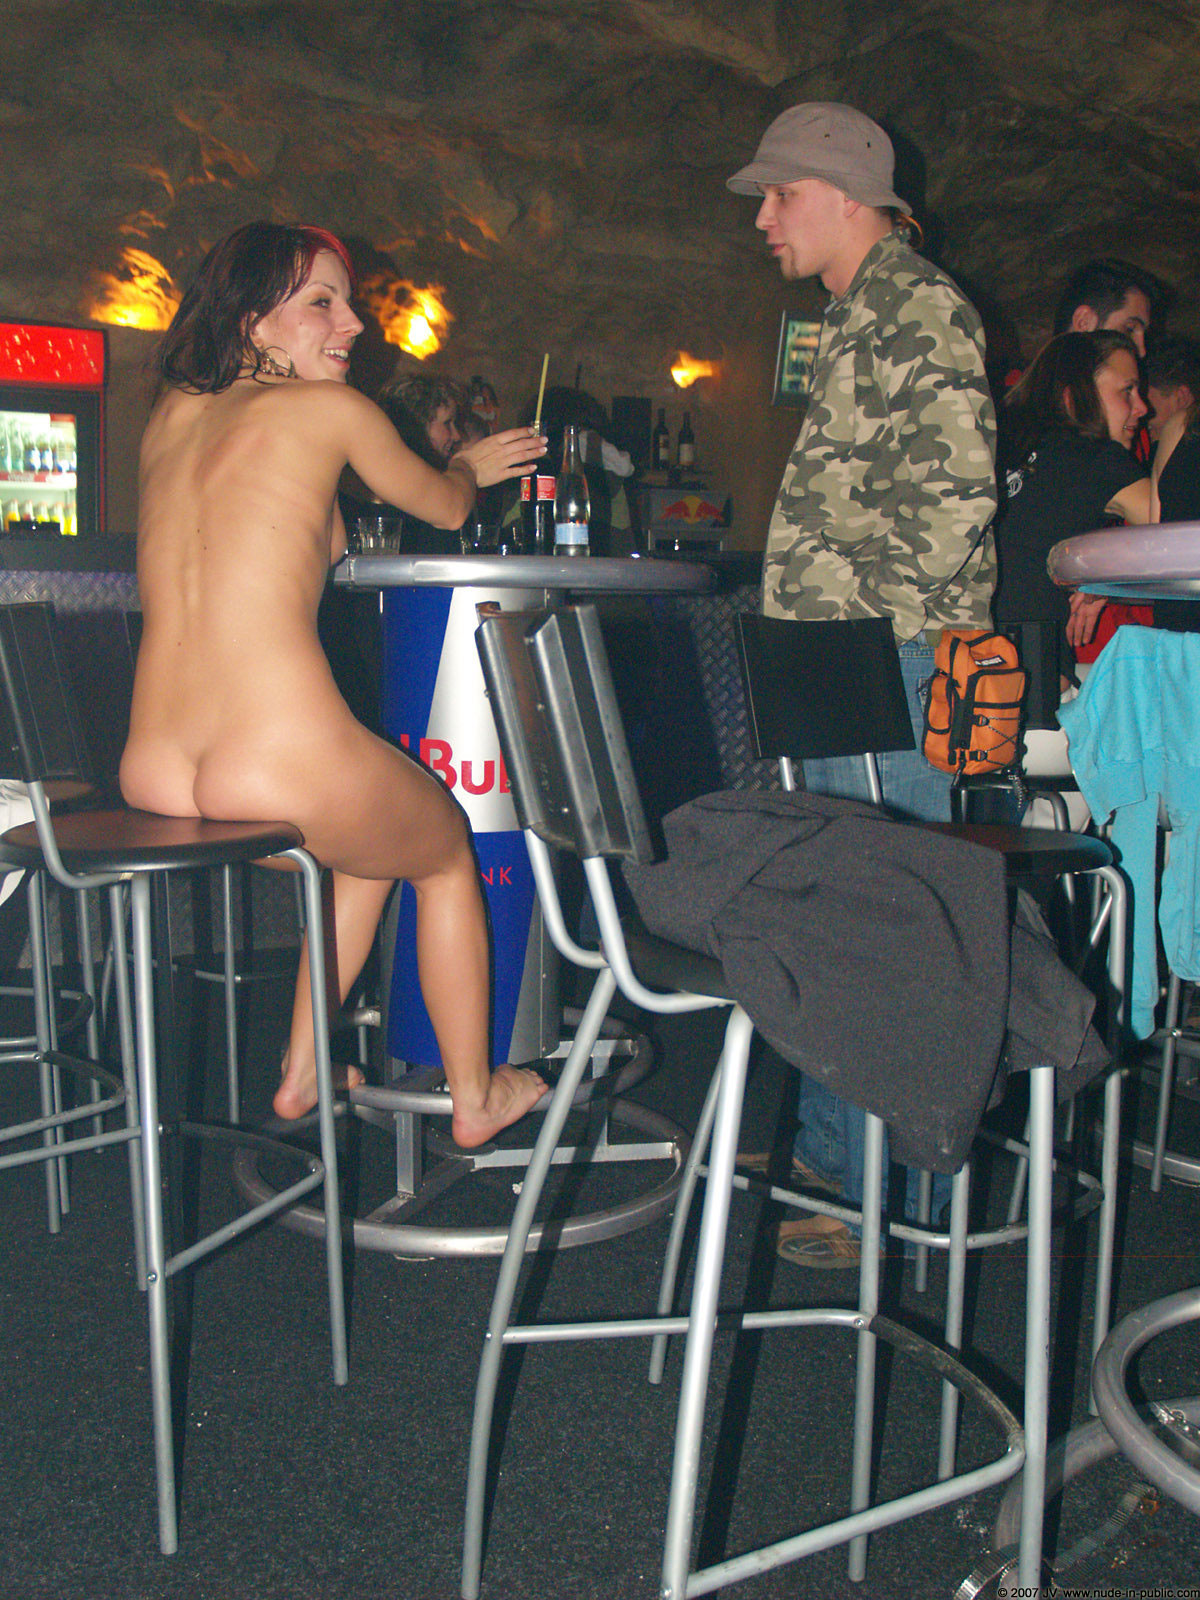 Nude night club party